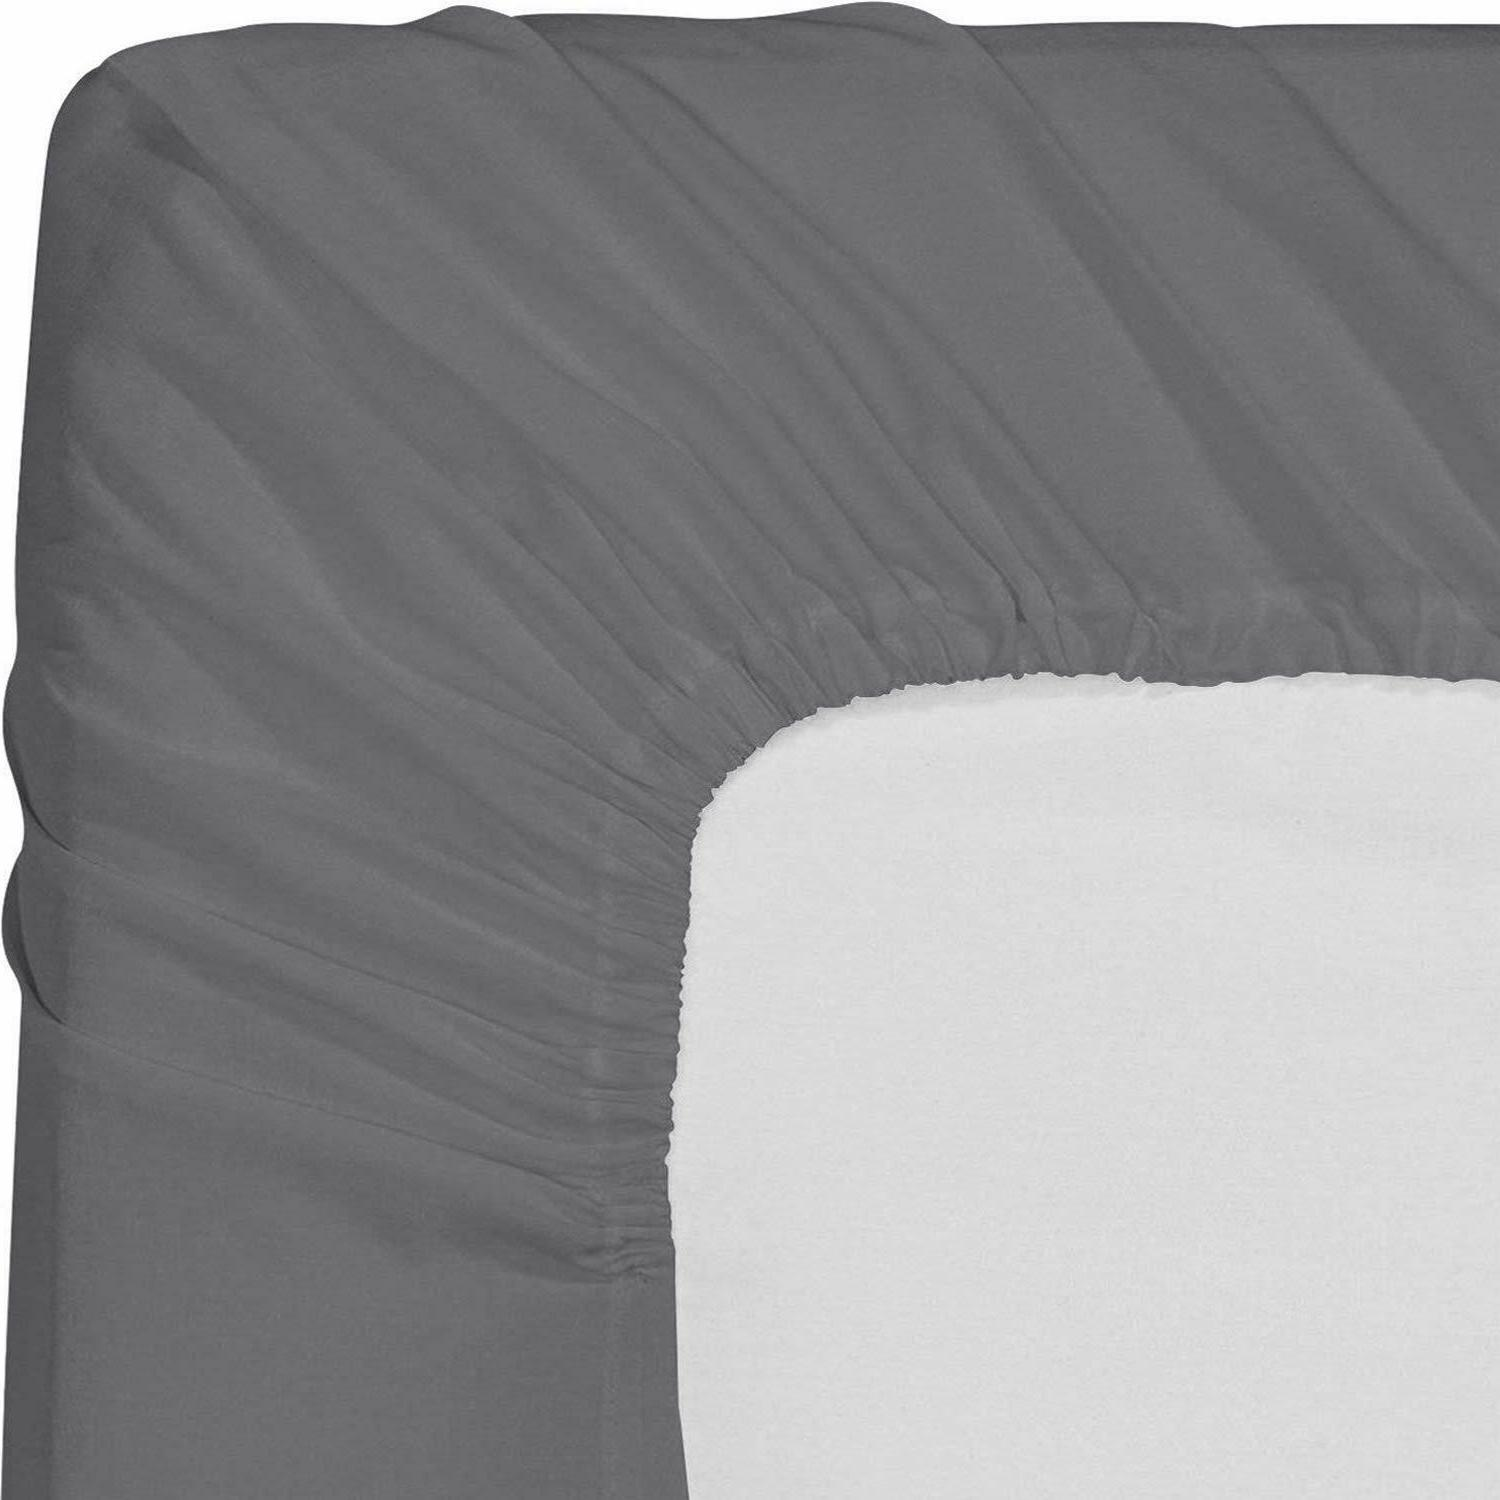 fitted sheet brushed ultra comfortable luxury soft